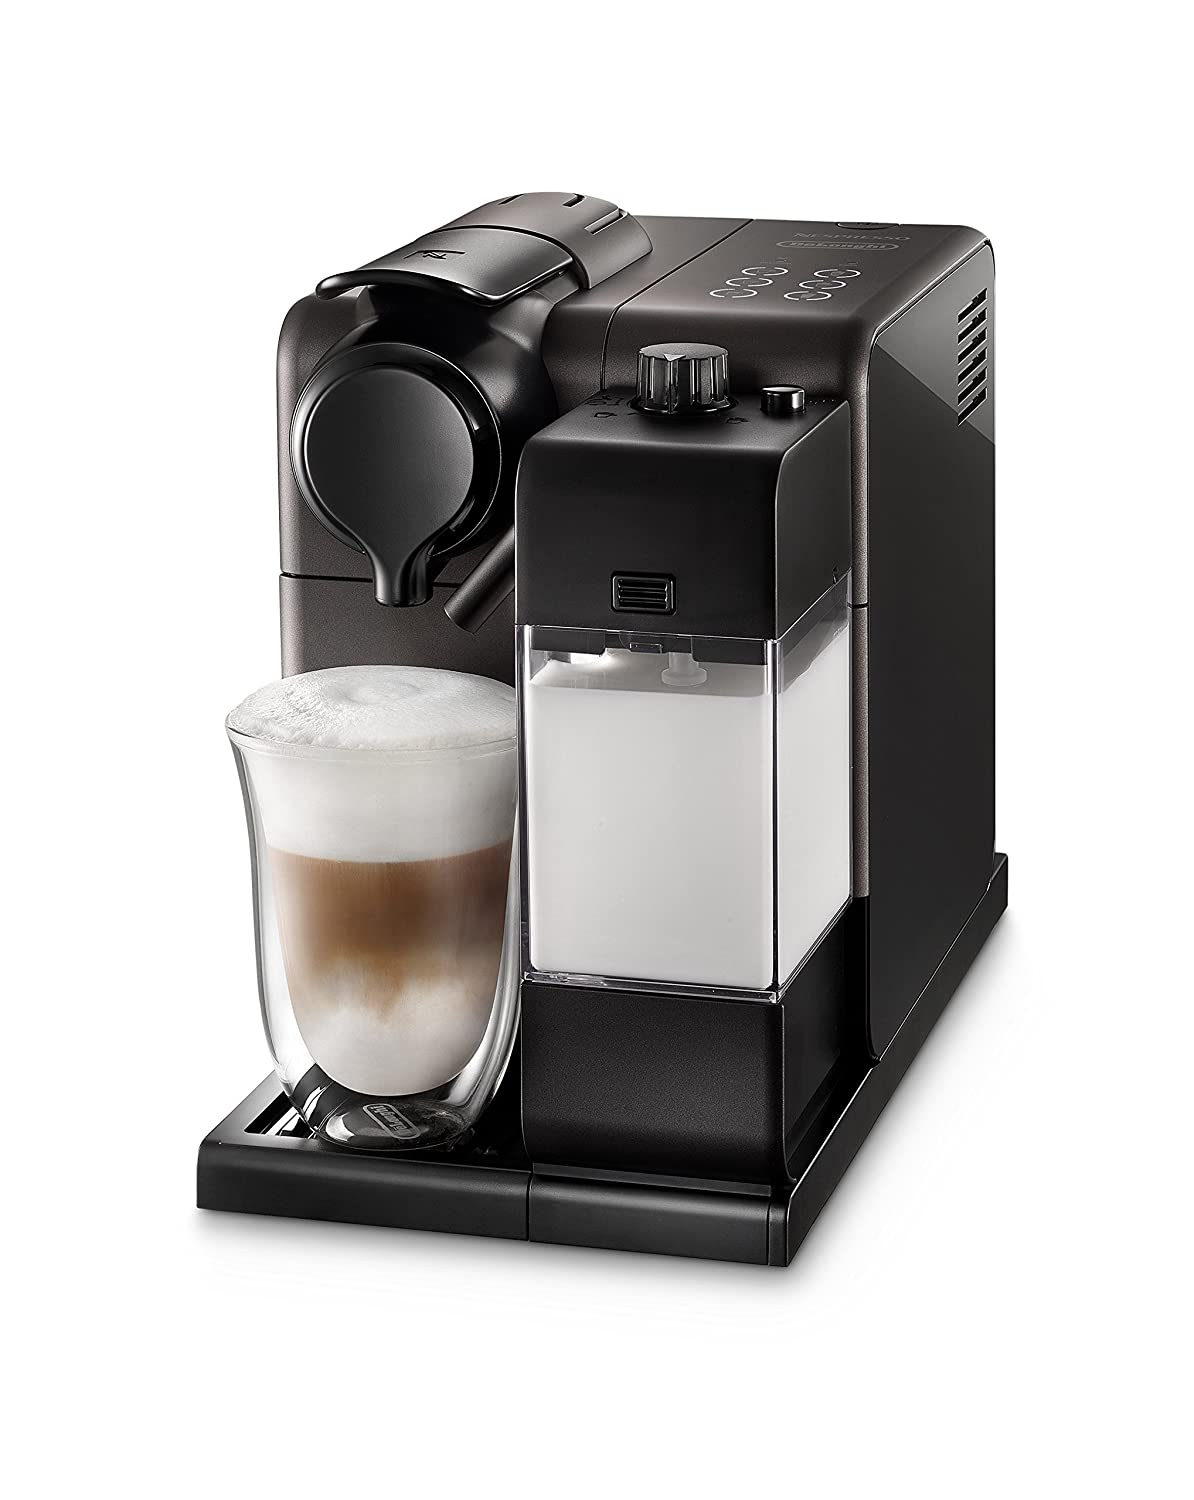 Best Home Espresso Machine Under 500 Which Should You Buy